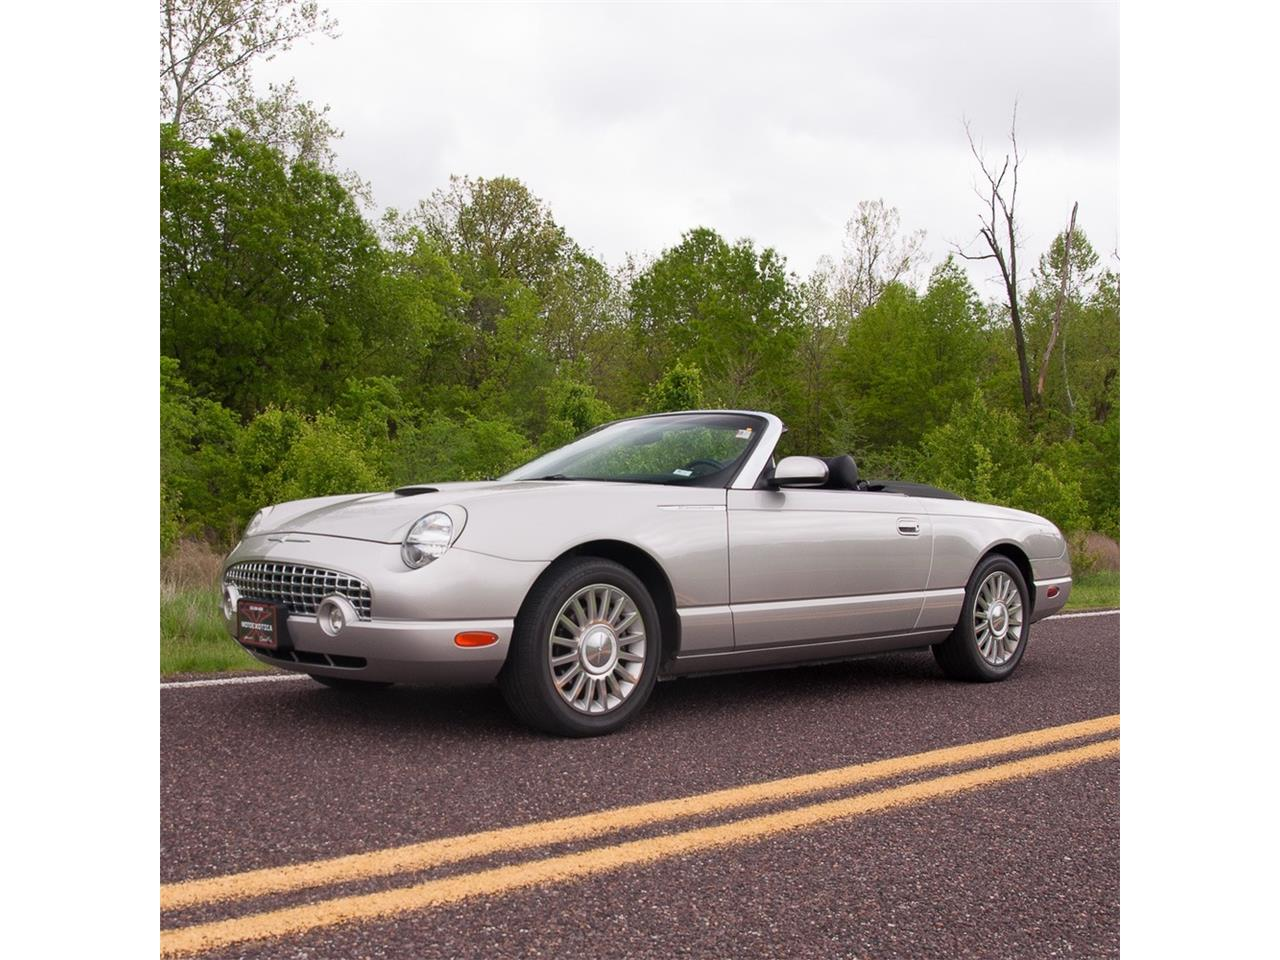 Large Picture of '05 Ford Thunderbird - $26,900.00 - Q2FN